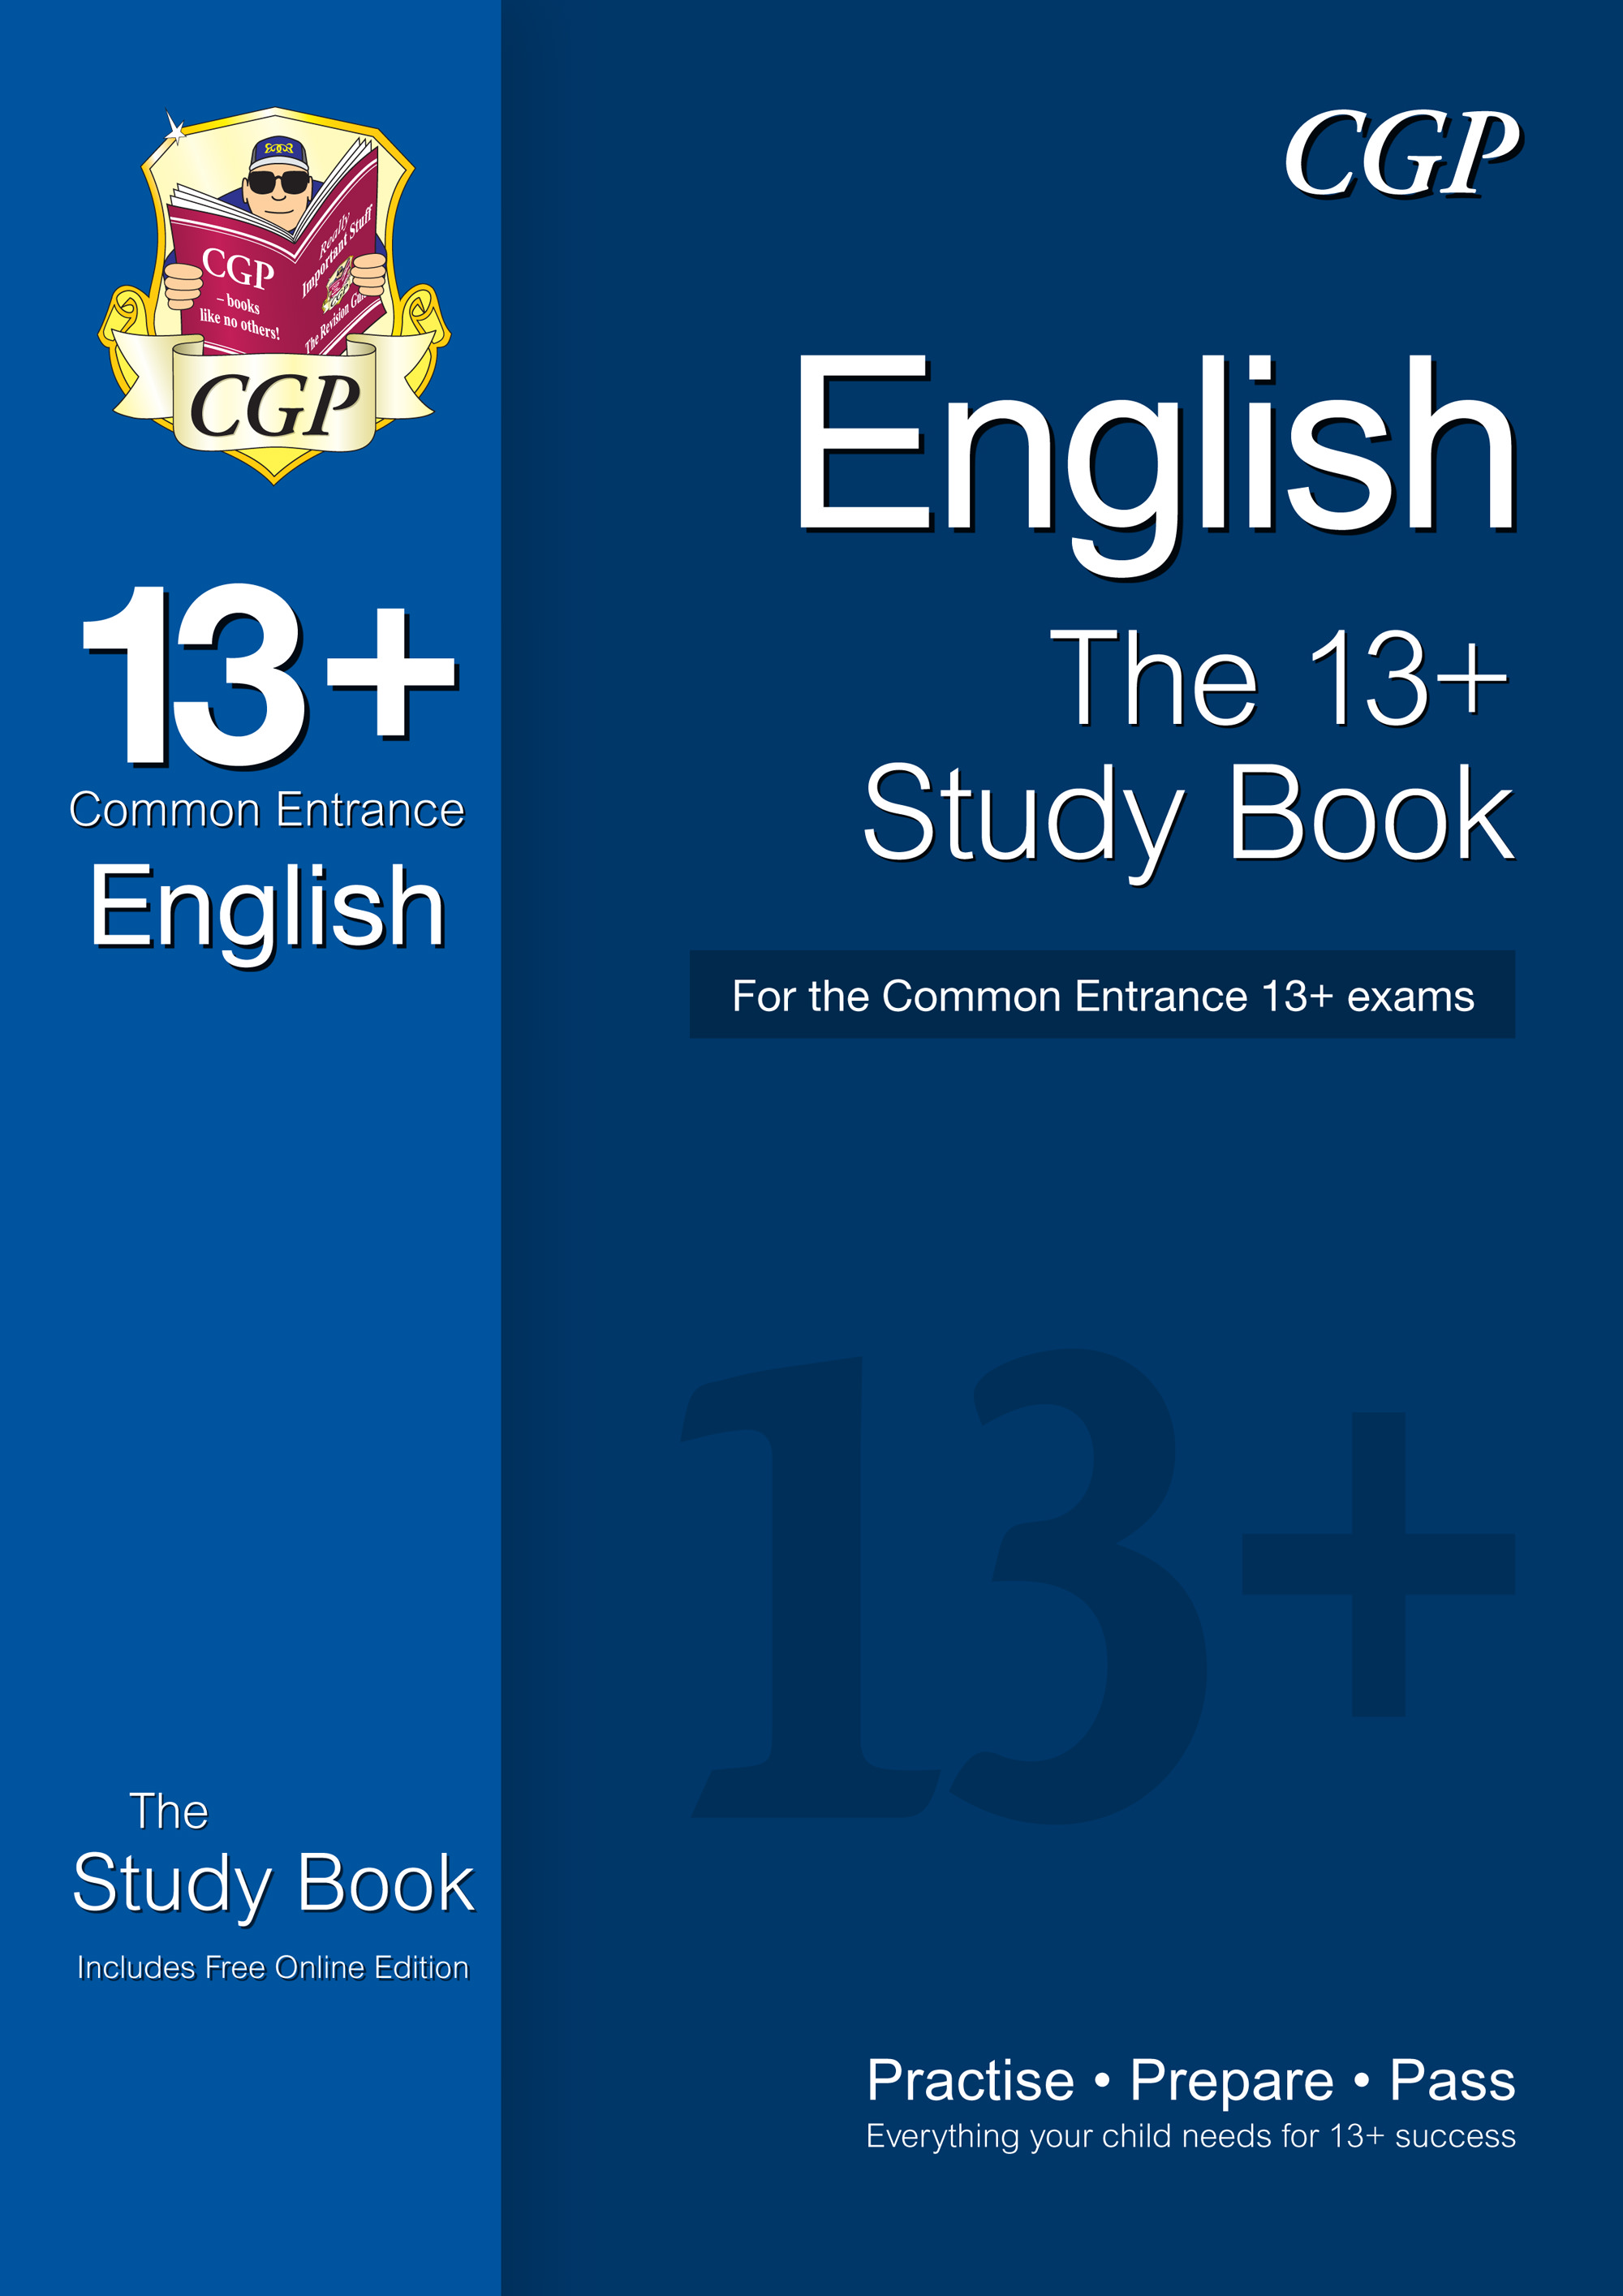 EIRT2D - The 13+ English Study Book for the Common Entrance Exams Online Edition